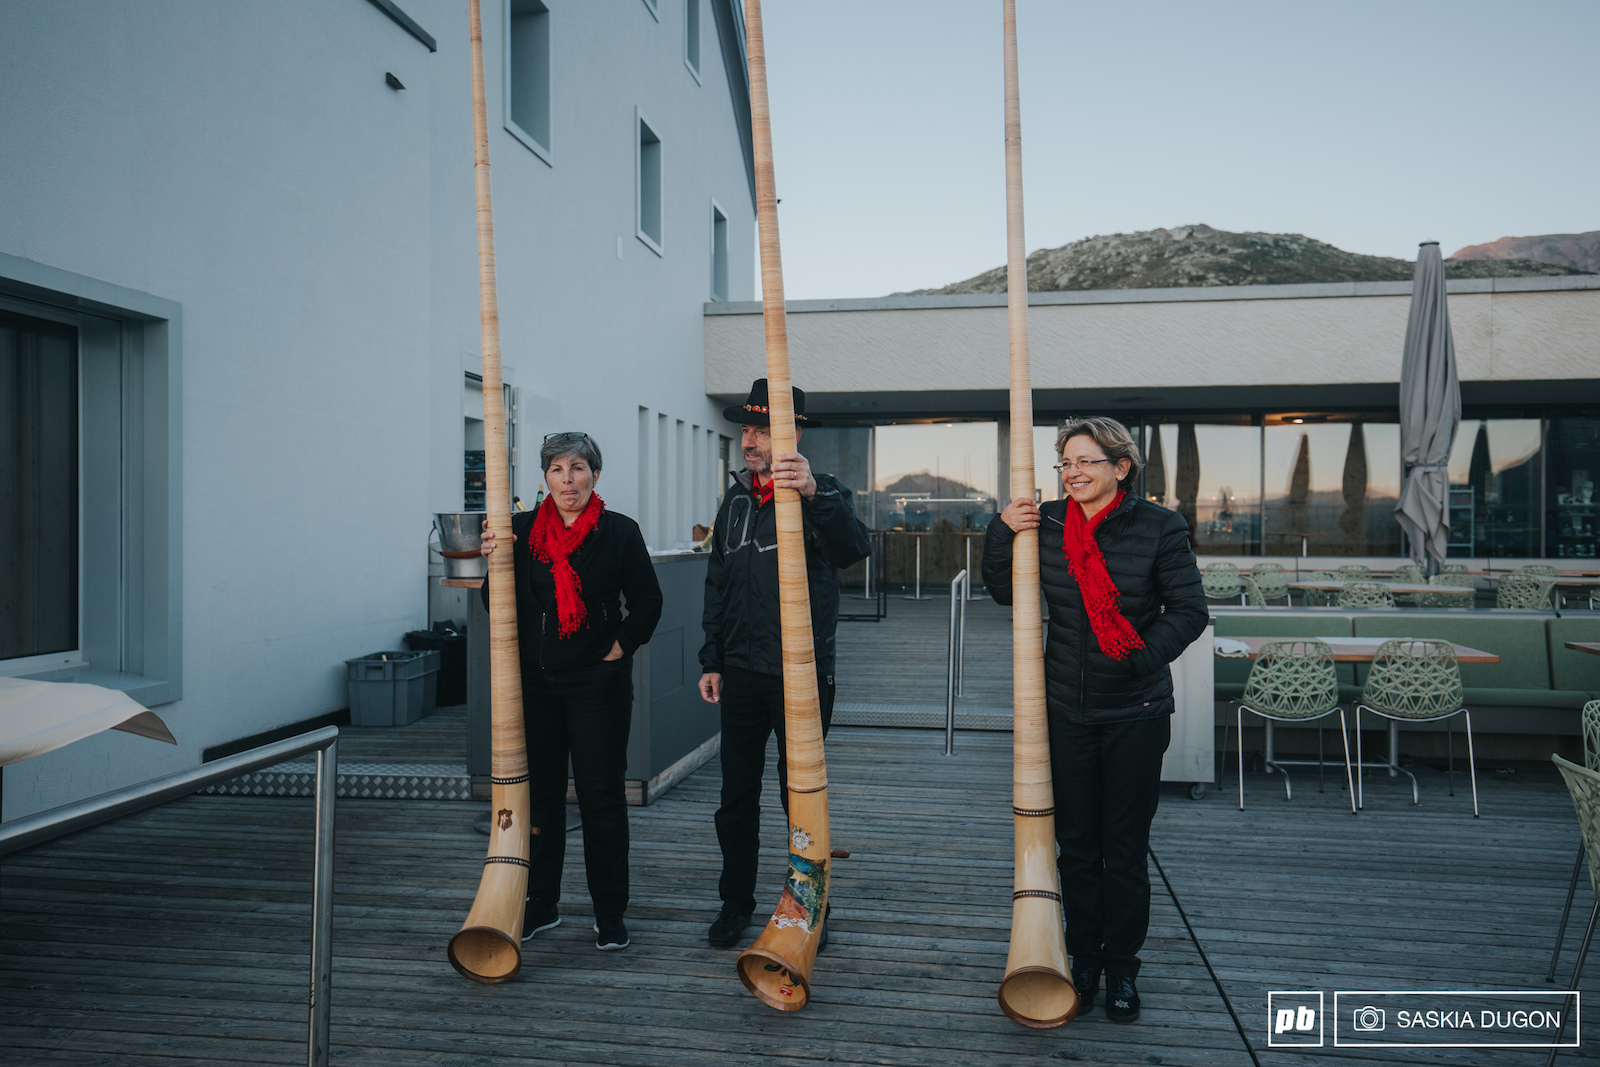 Culture was by no means few and far between in St.Moritz as we were greeted for dinner one night by some beautiful Alpine horn entertainment.